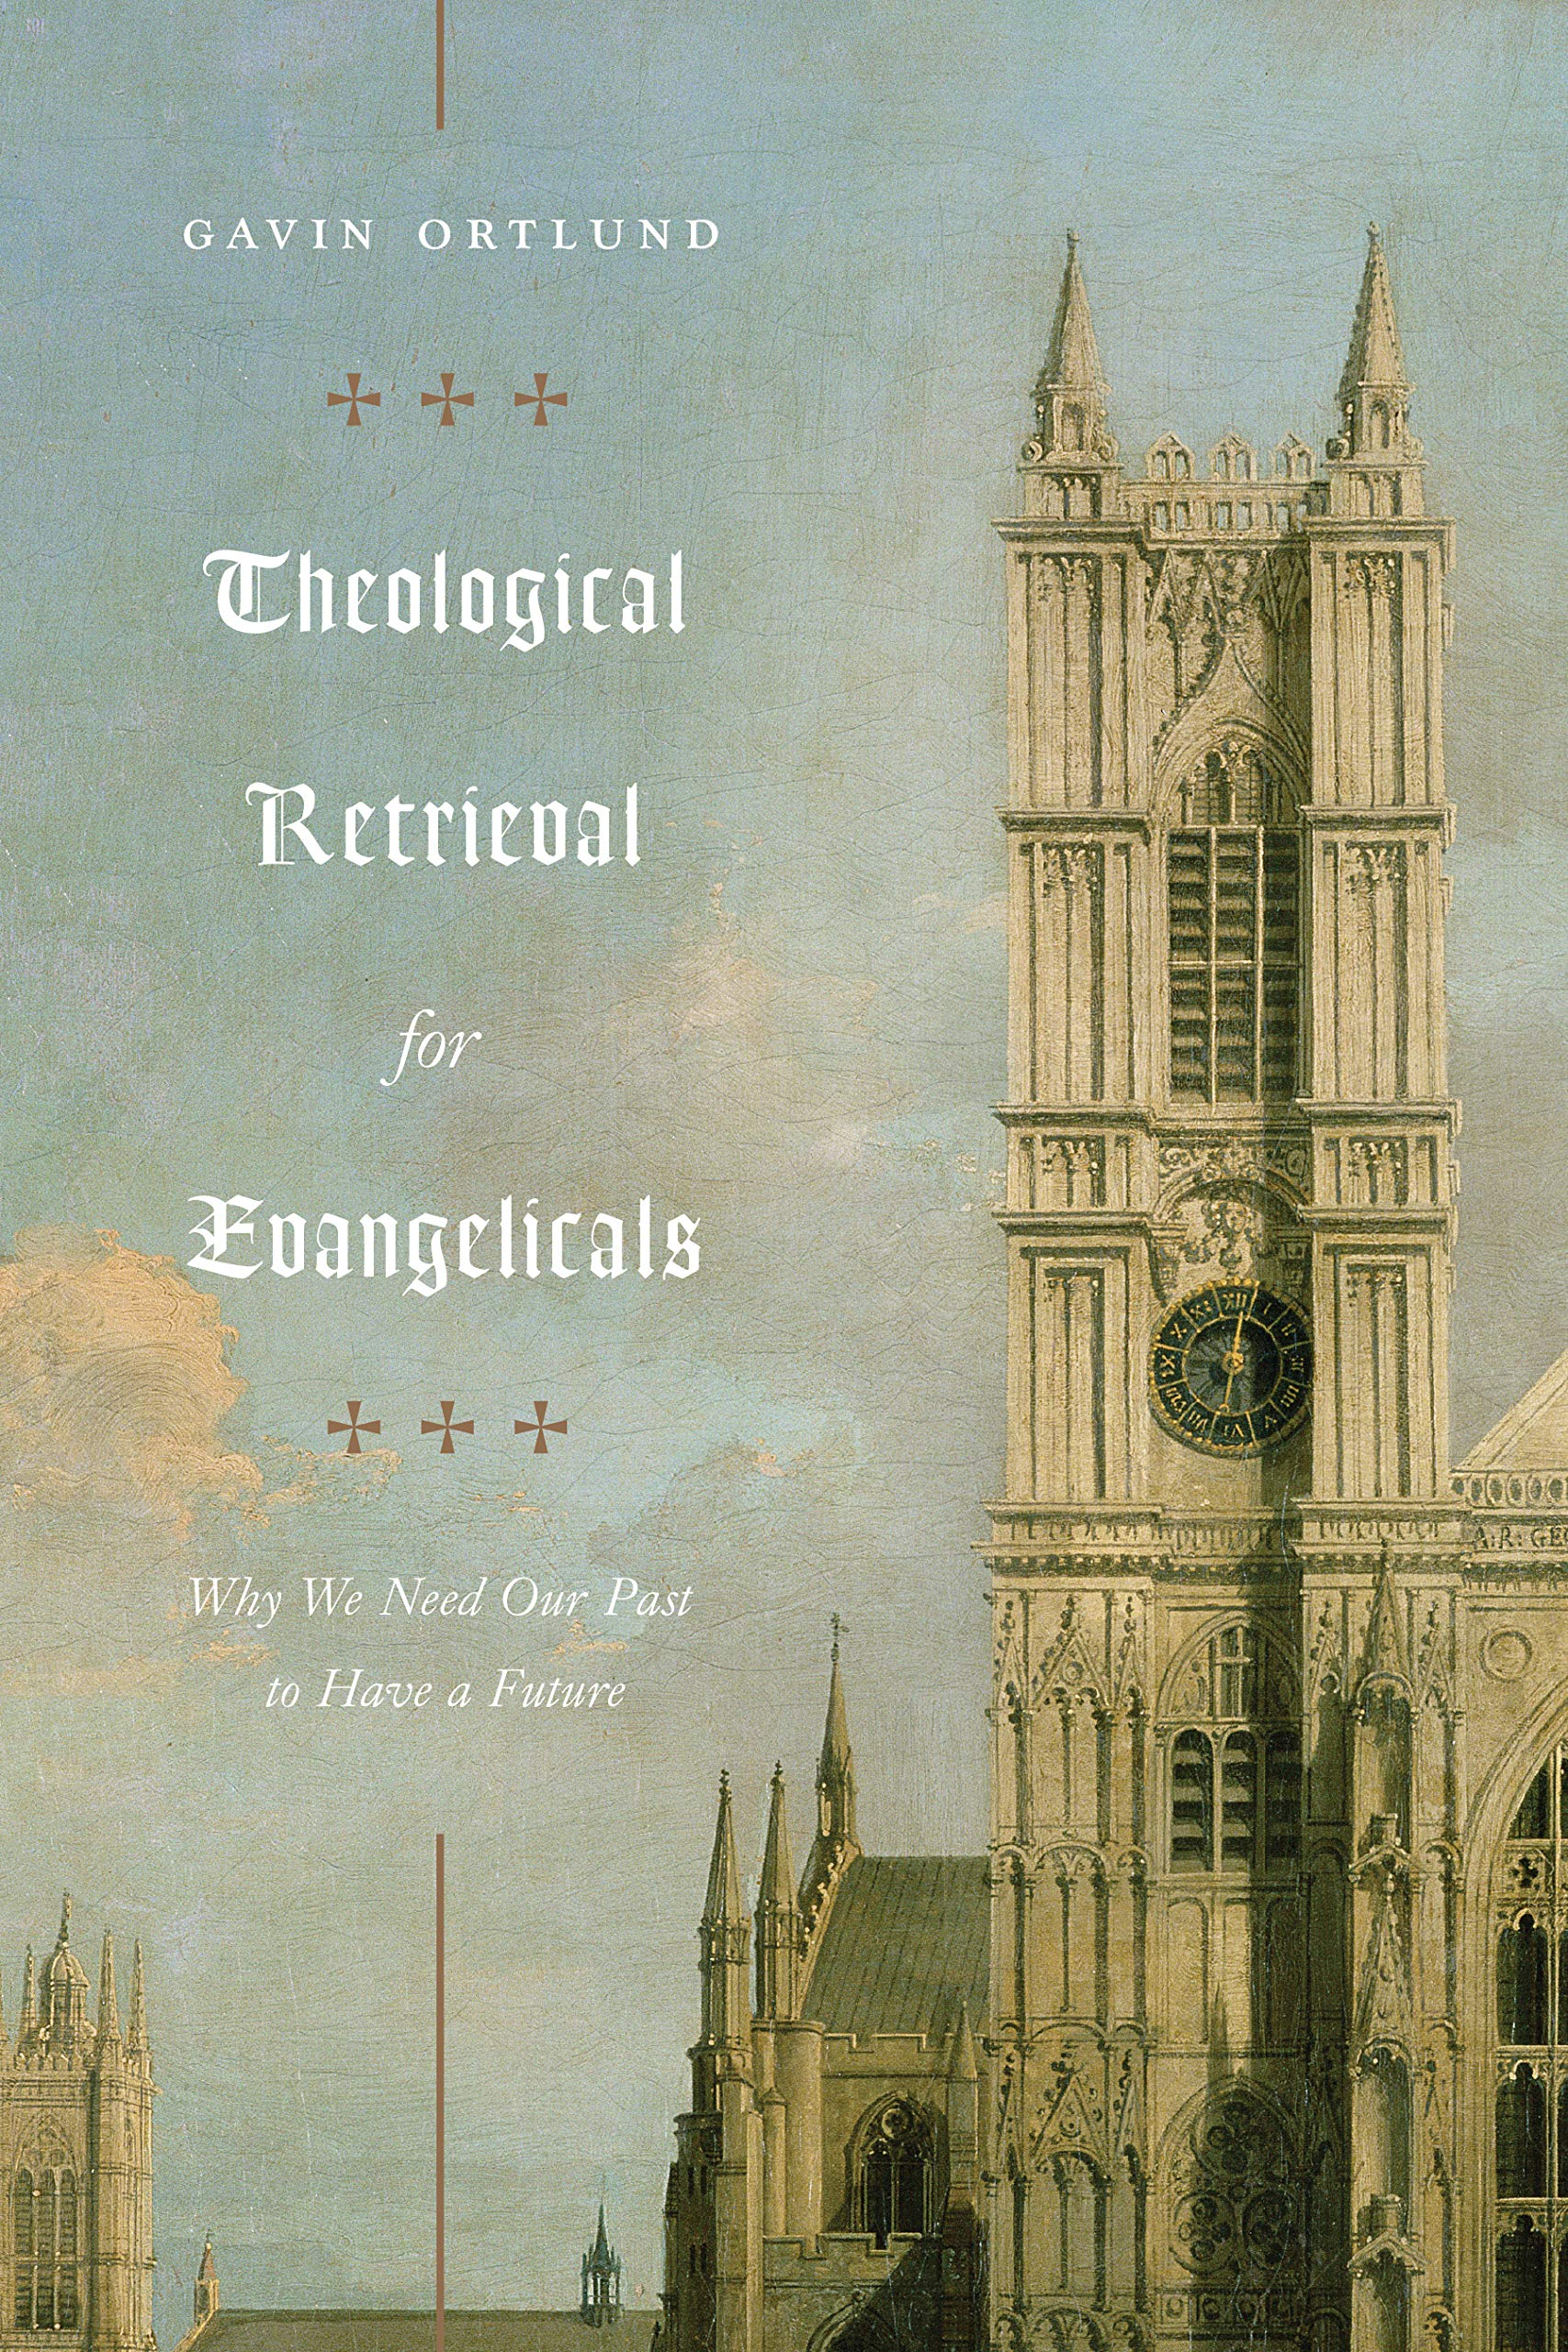 Theological, Theological Retrieval for Evangelicals: Why We Need Our Past to Have a Future – Gavin Ortlund, Servants of Grace, Servants of Grace